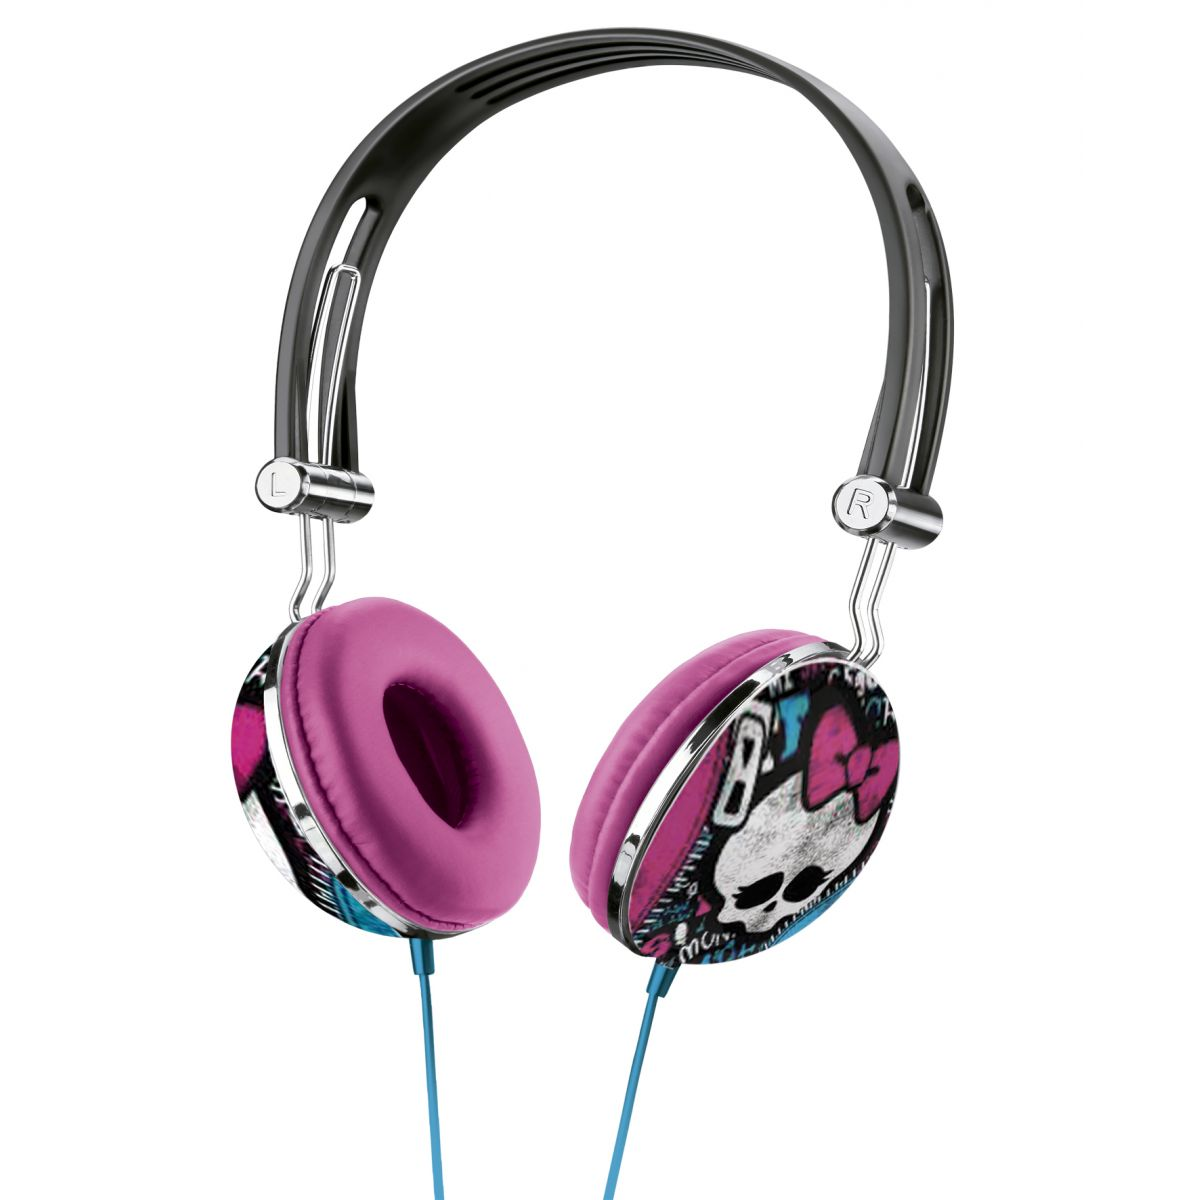 Fone de Ouvido Monster High PH100 - Multilaser